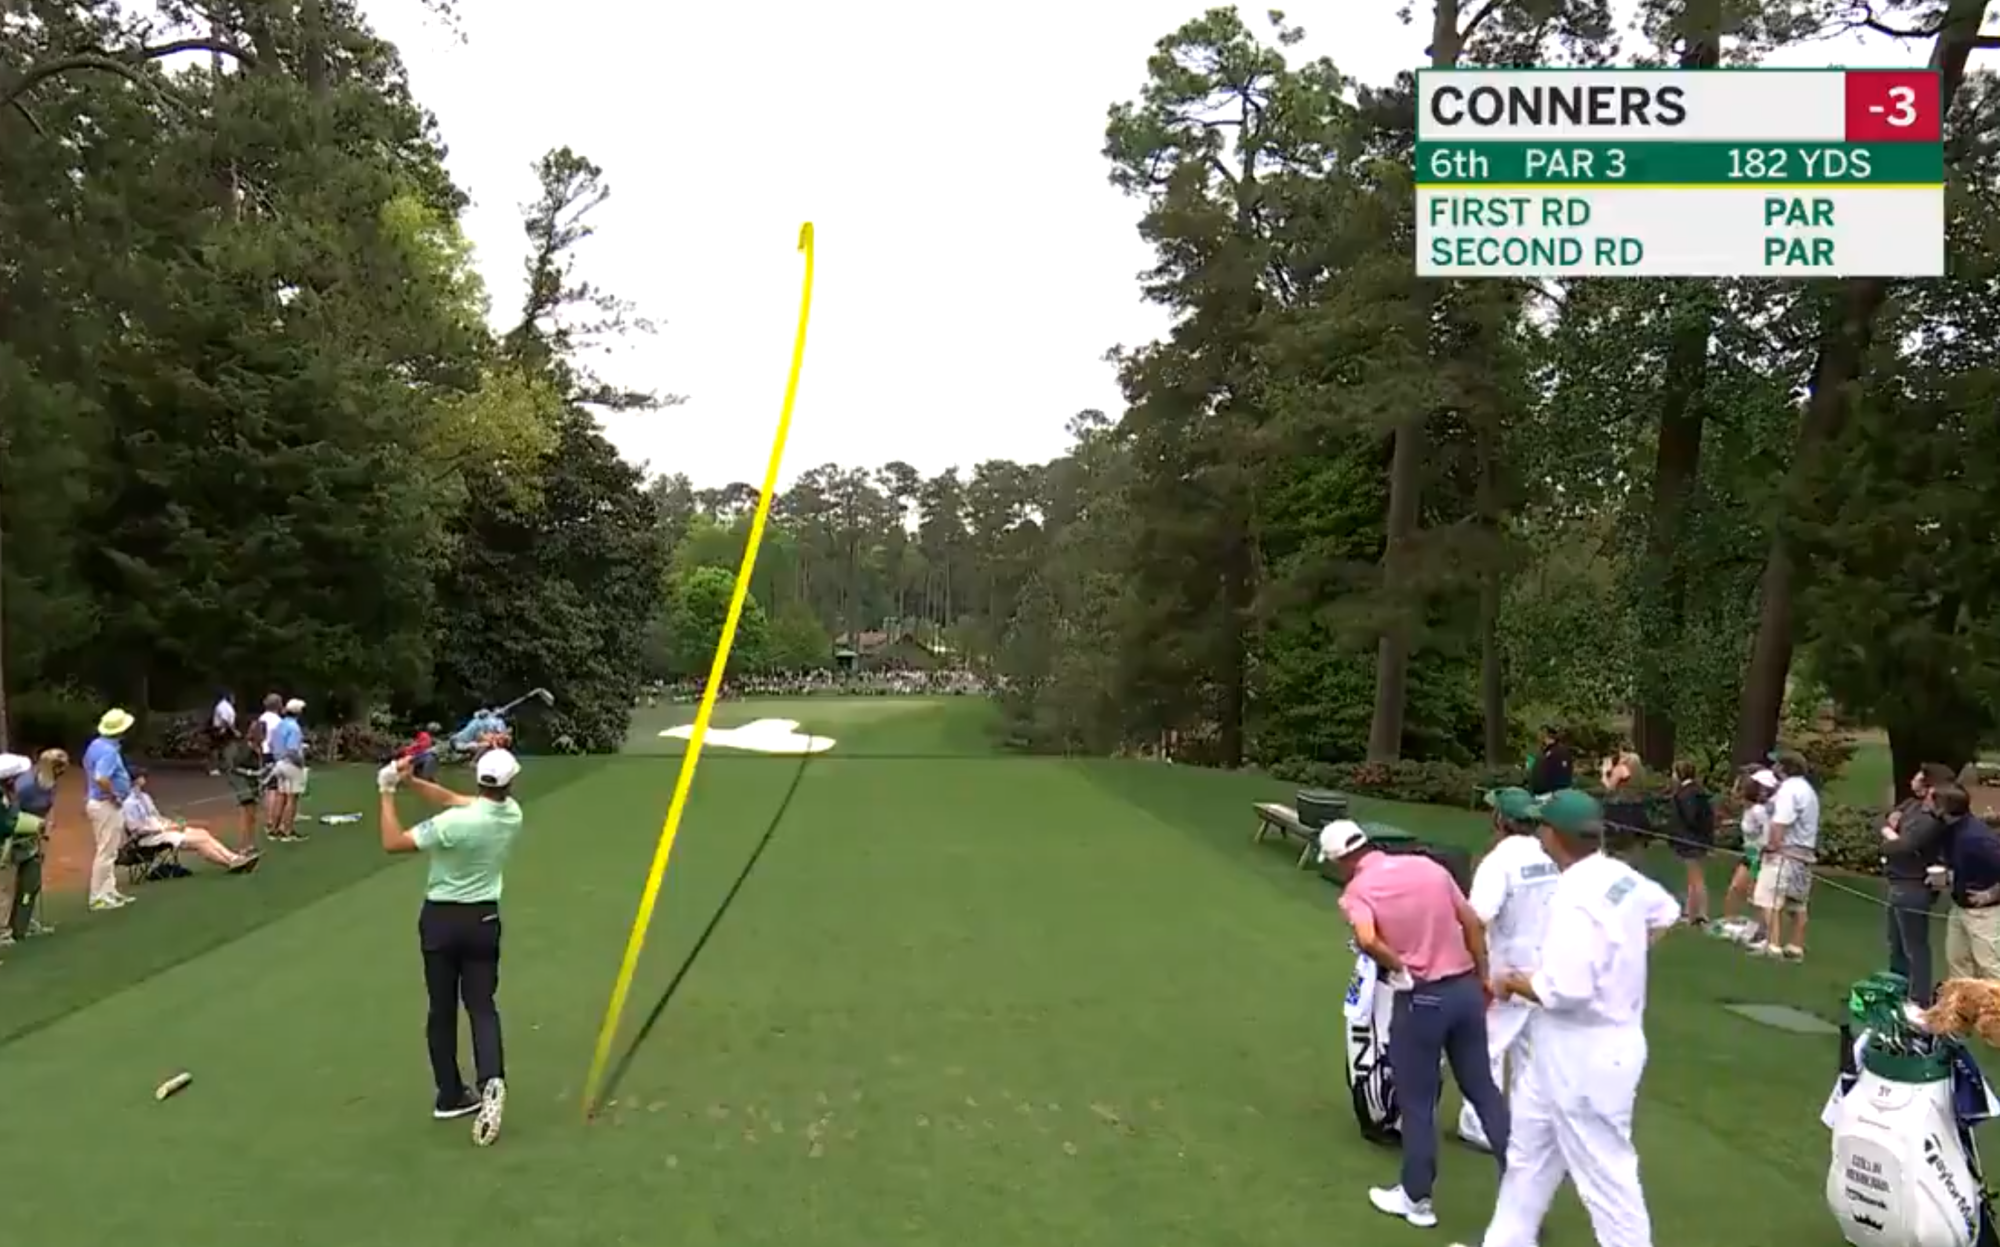 Contending Canadian Corey Conners drains historic hole-in-one at the Masters